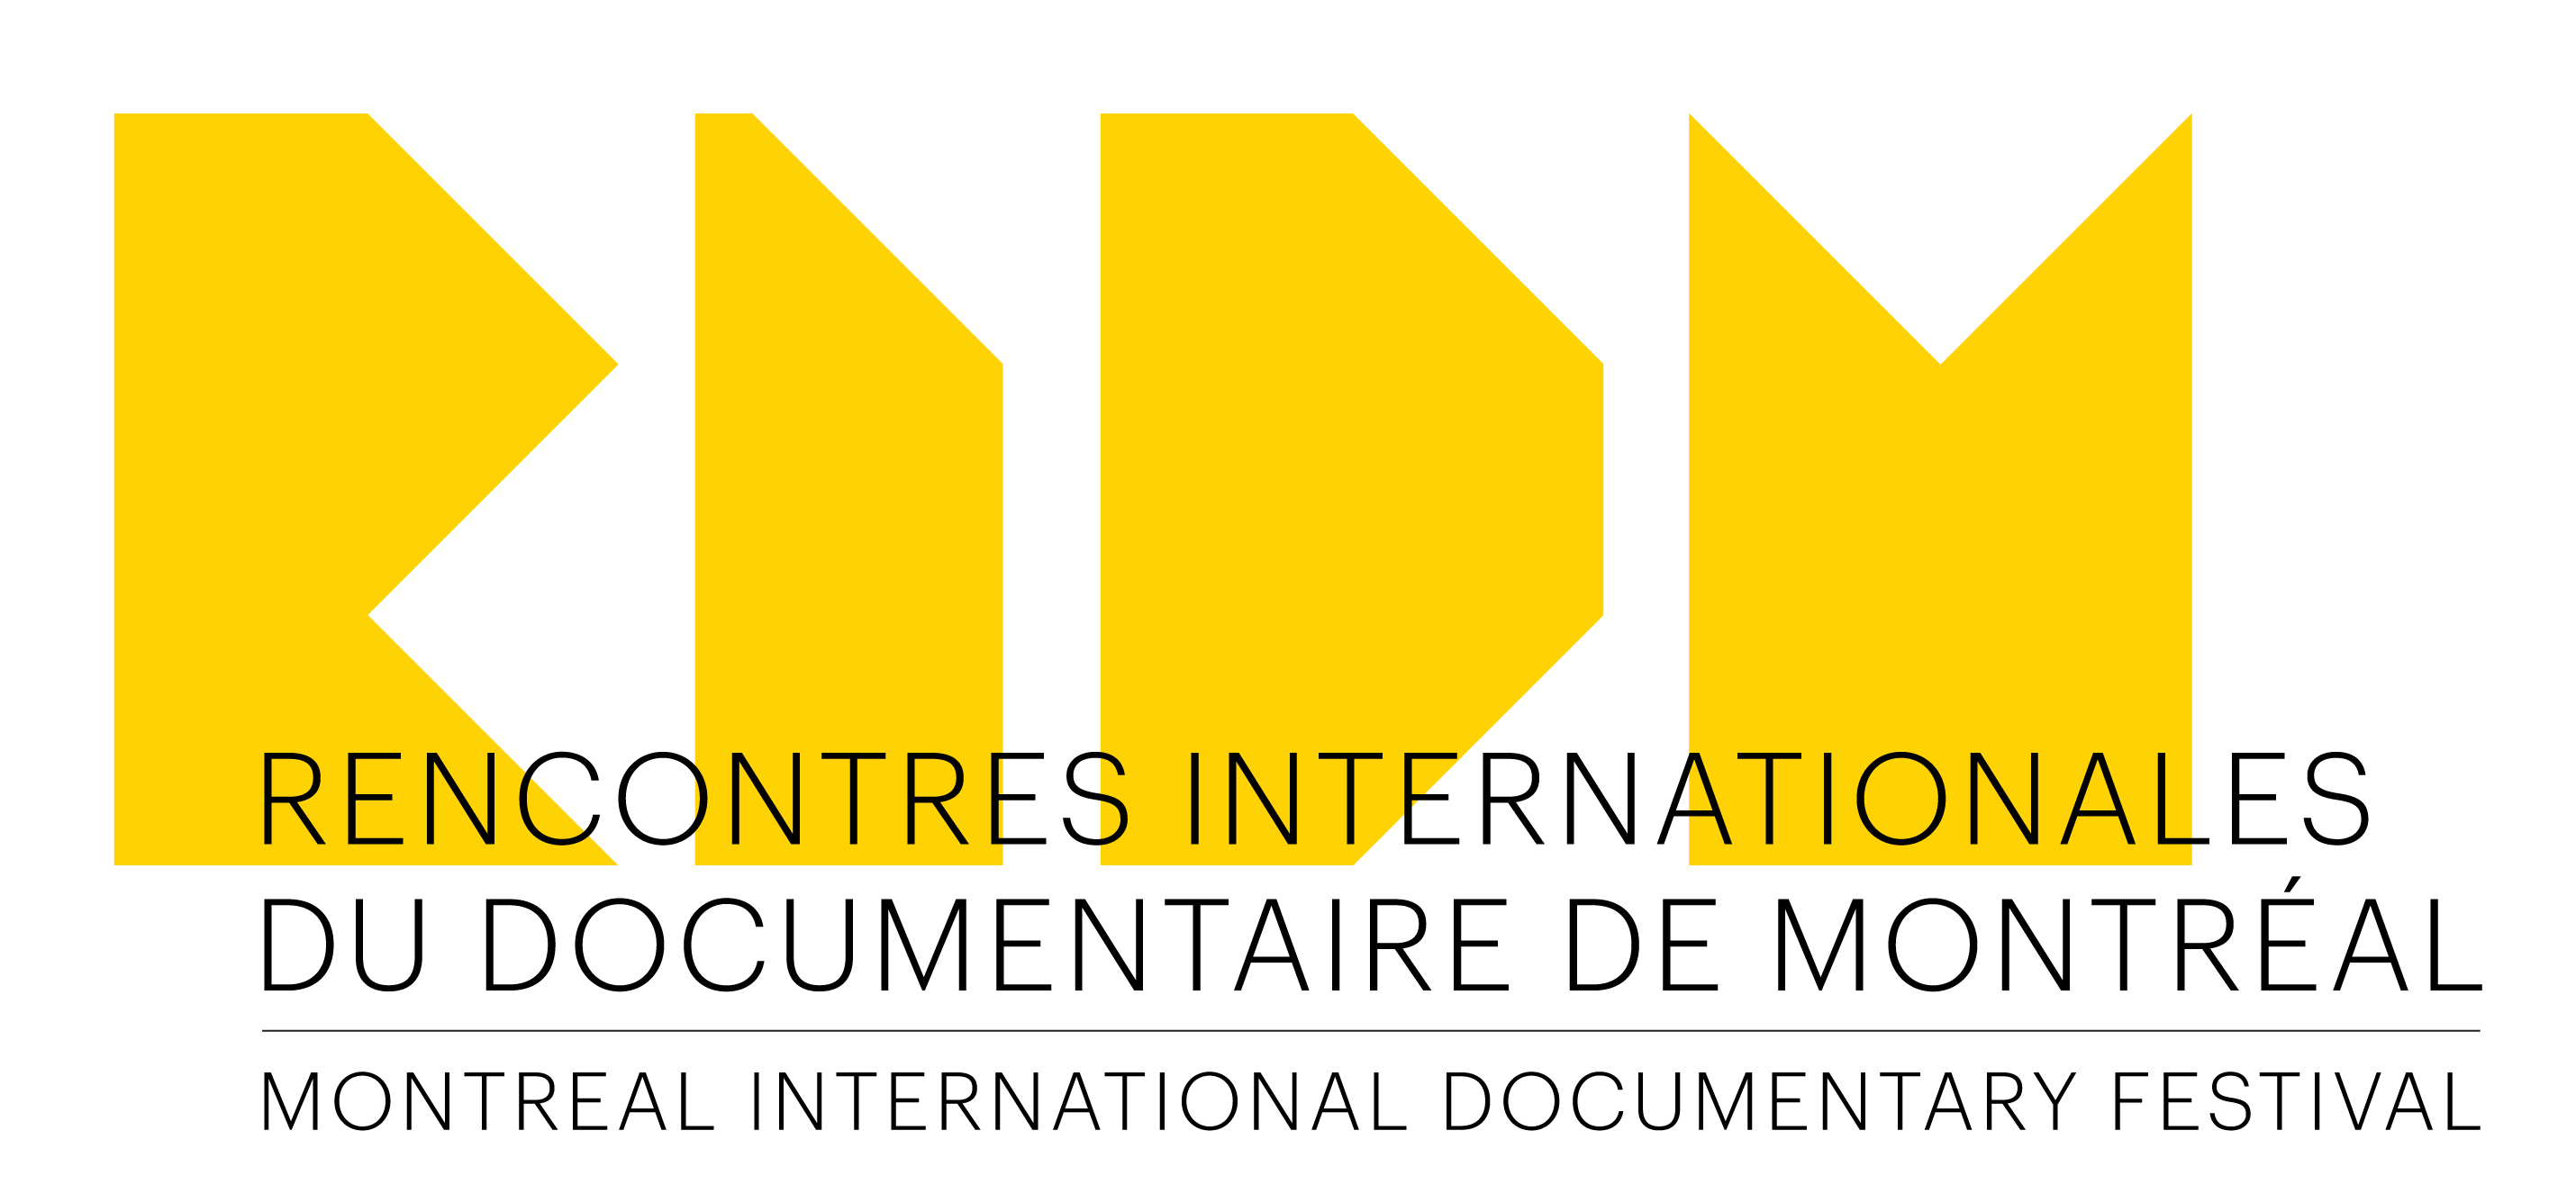 Rencontre internationale du documentaire de montreal